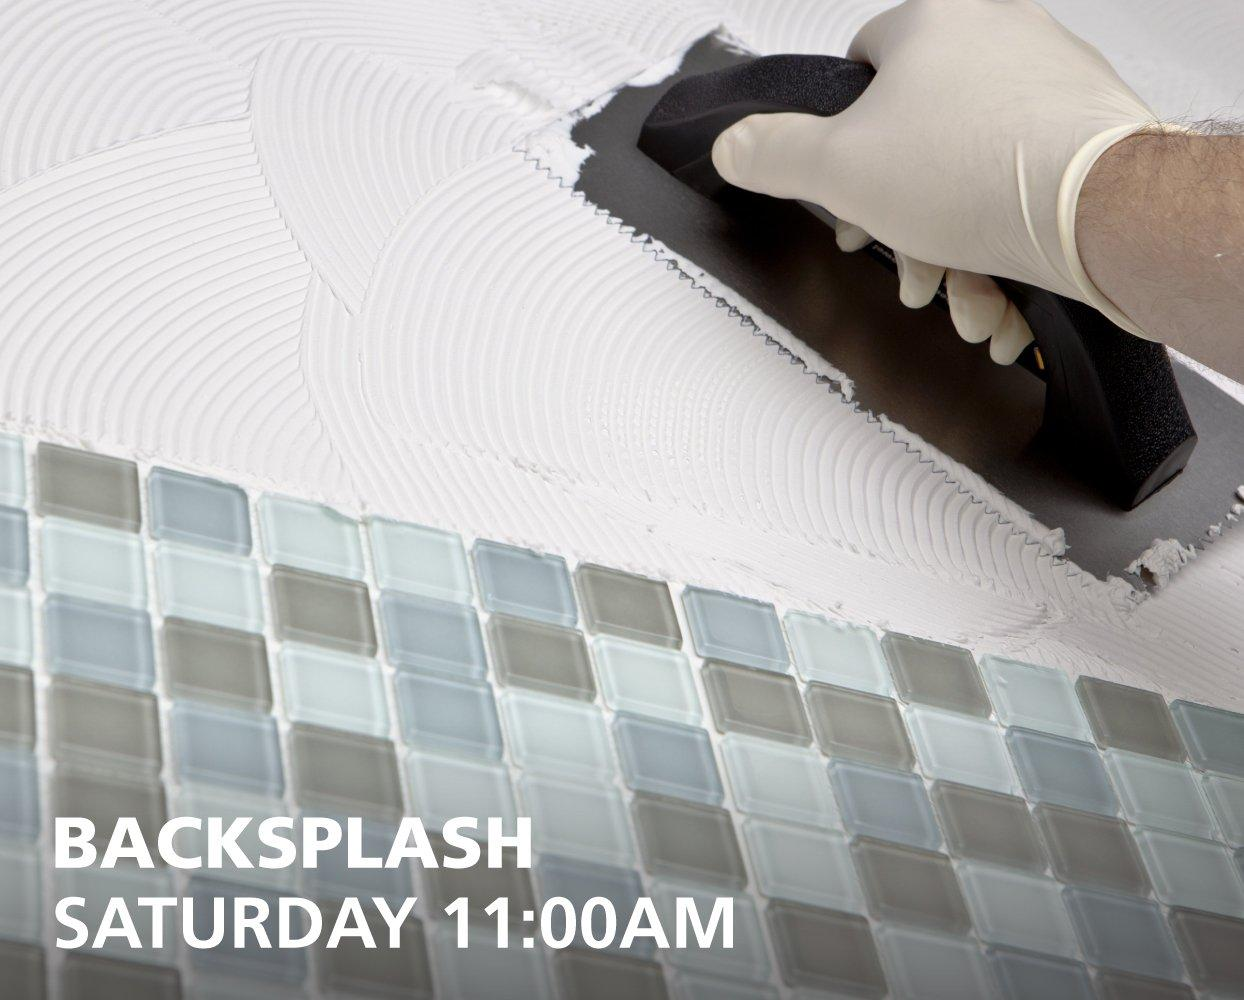 DO IT YOURSELF Backsplash Installation Services